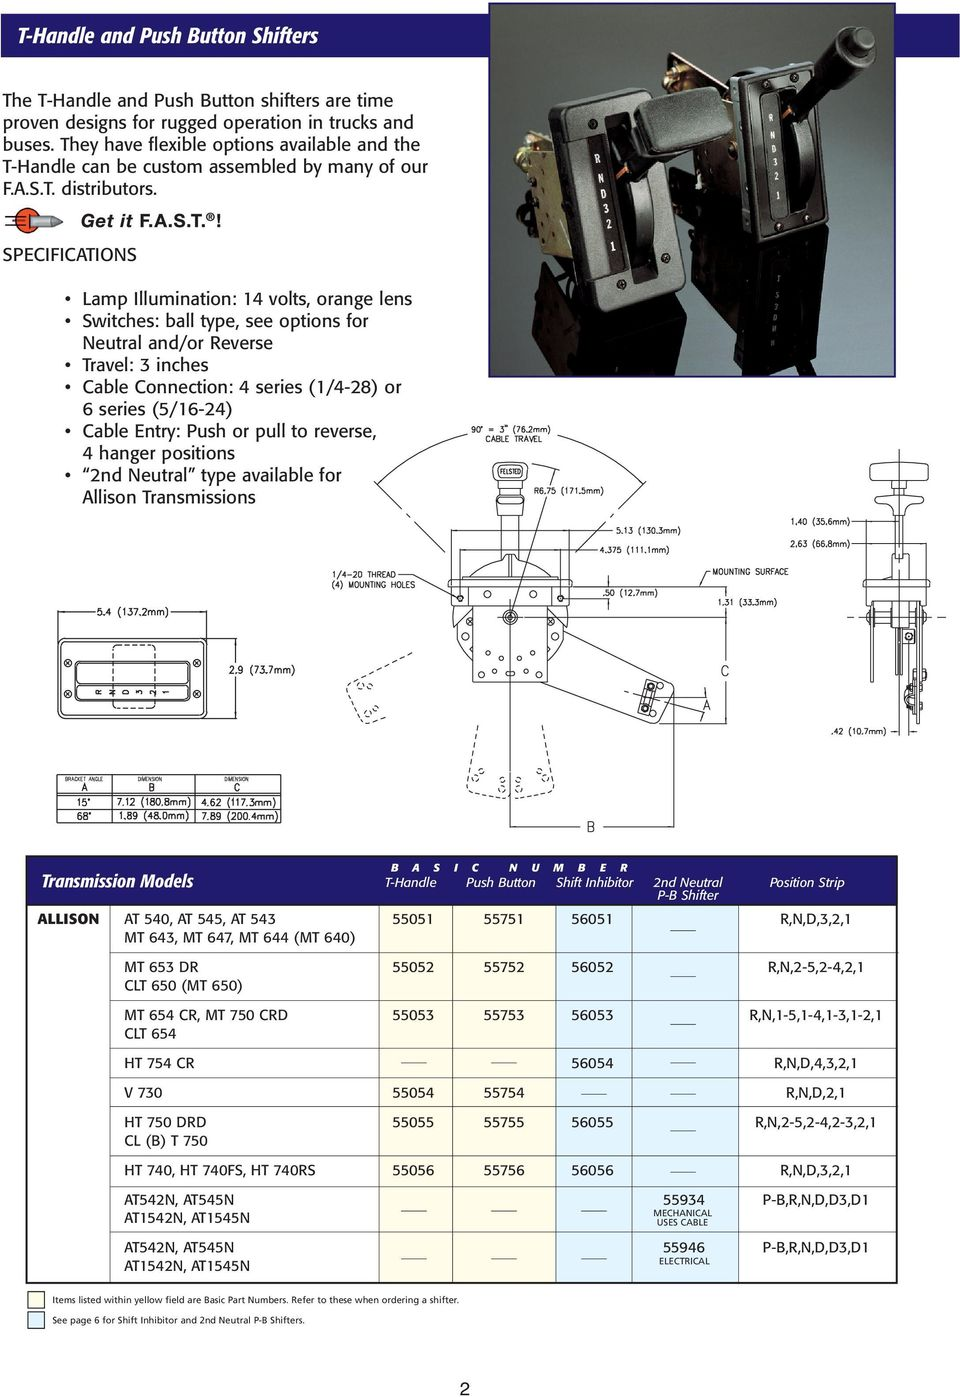 Tm 643 Allison Transmission Wiring Schematic Block And Whirlpool Lfe5800wo Systems Available For 1000 2000 2400 Shifters Connection Rh Docplayer Net